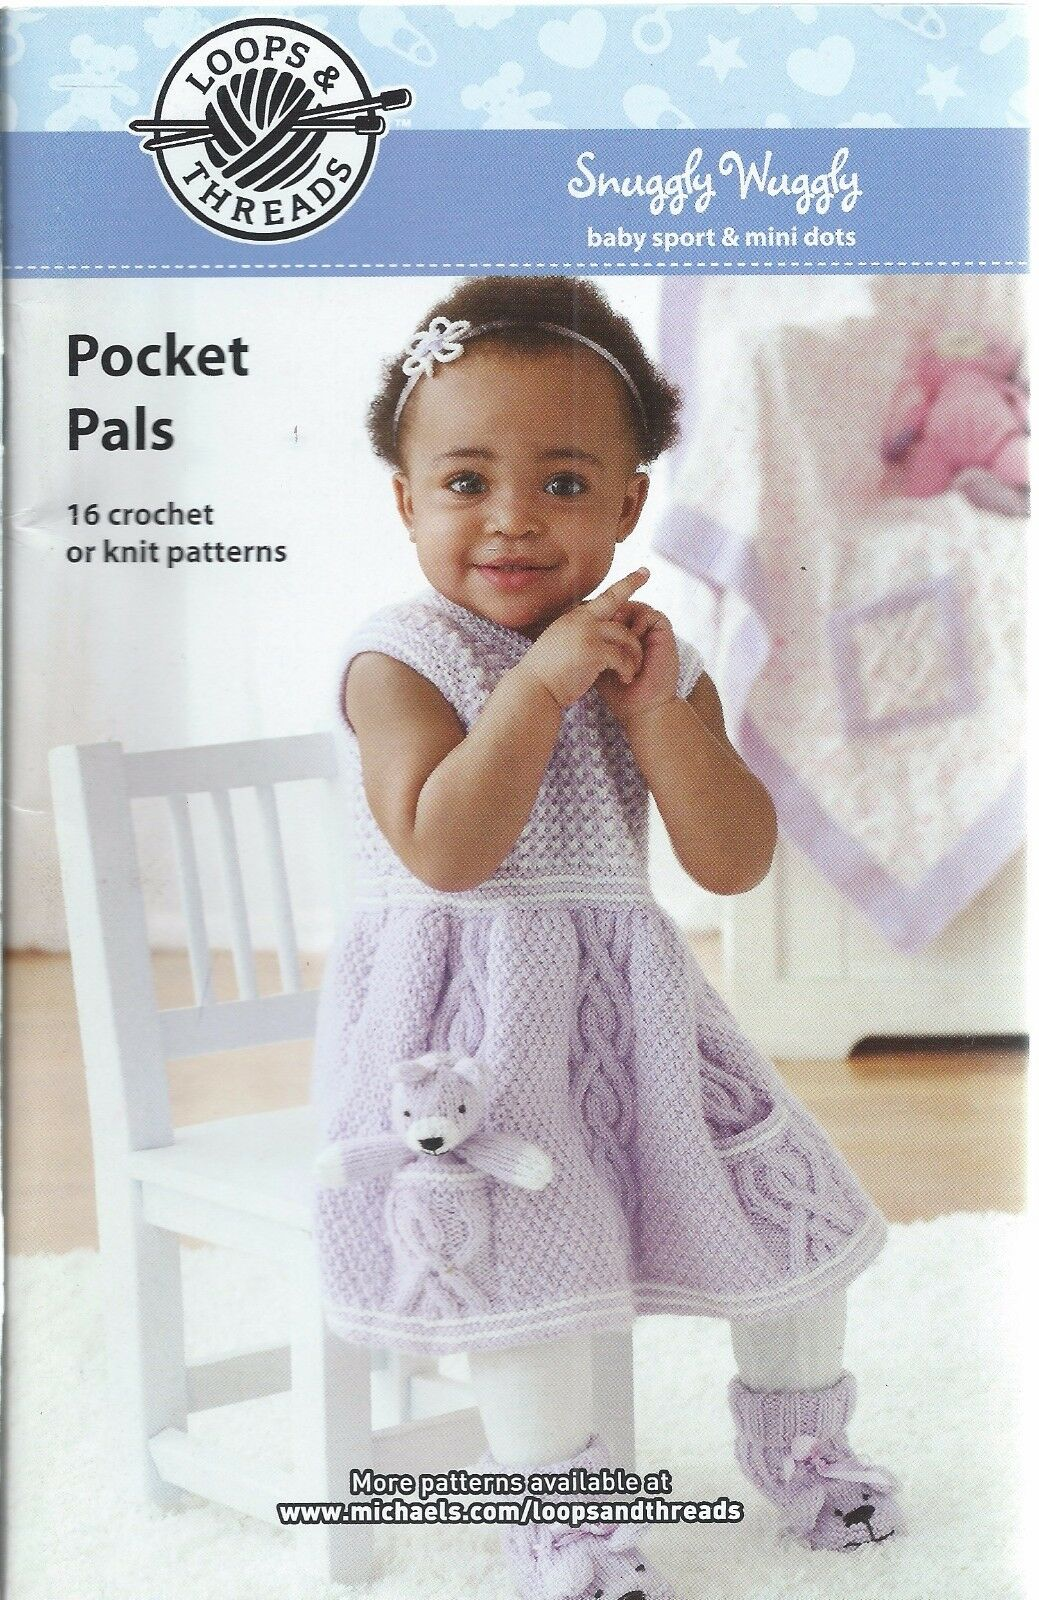 Pocket Pals 16 Crochet Knit Children Patterns Loops & Threads ...